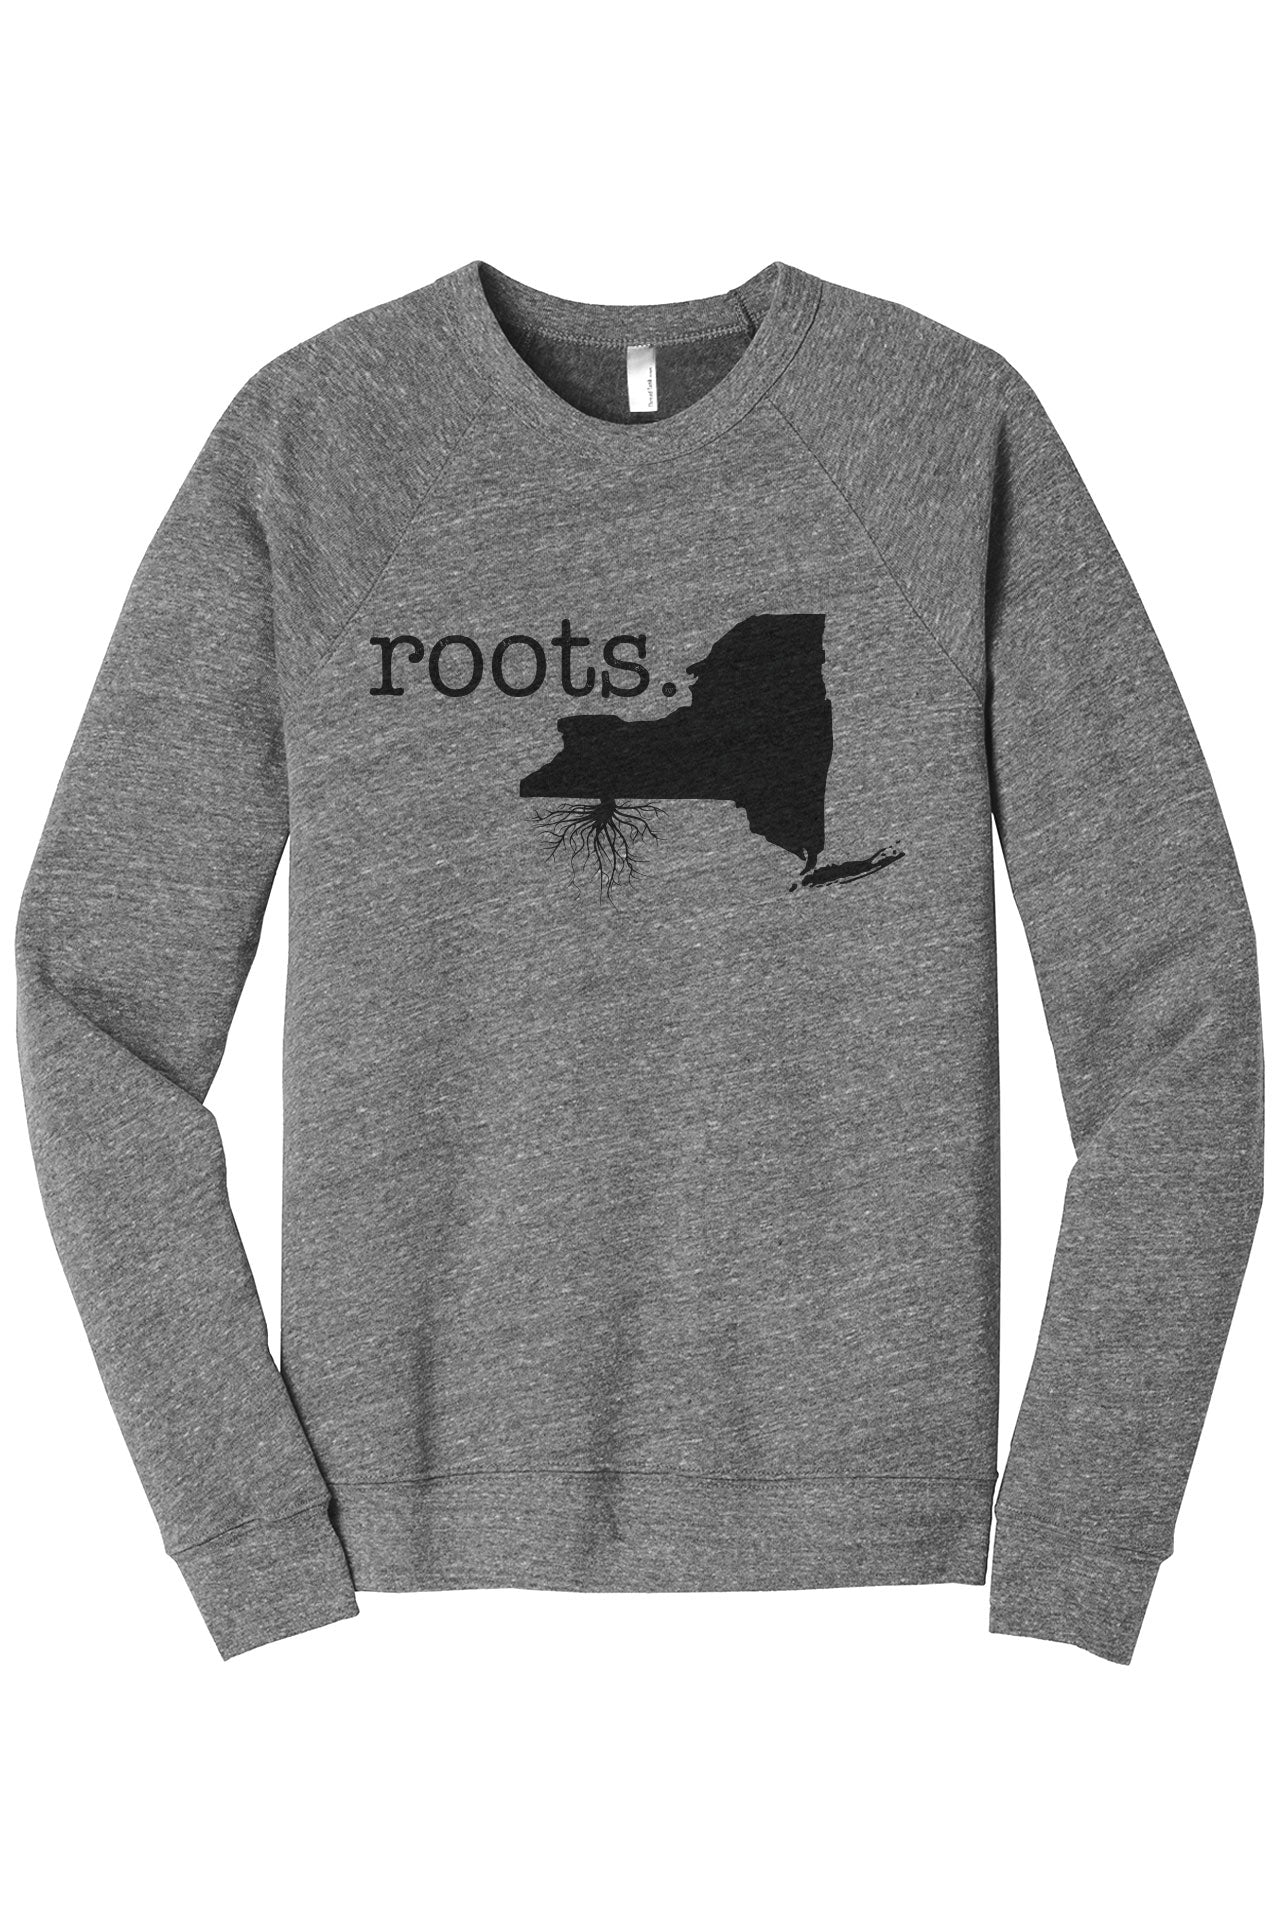 Home Roots State New York NY Cozy Unisex Fleece Longsleeves Sweater Heather Grey FRONT